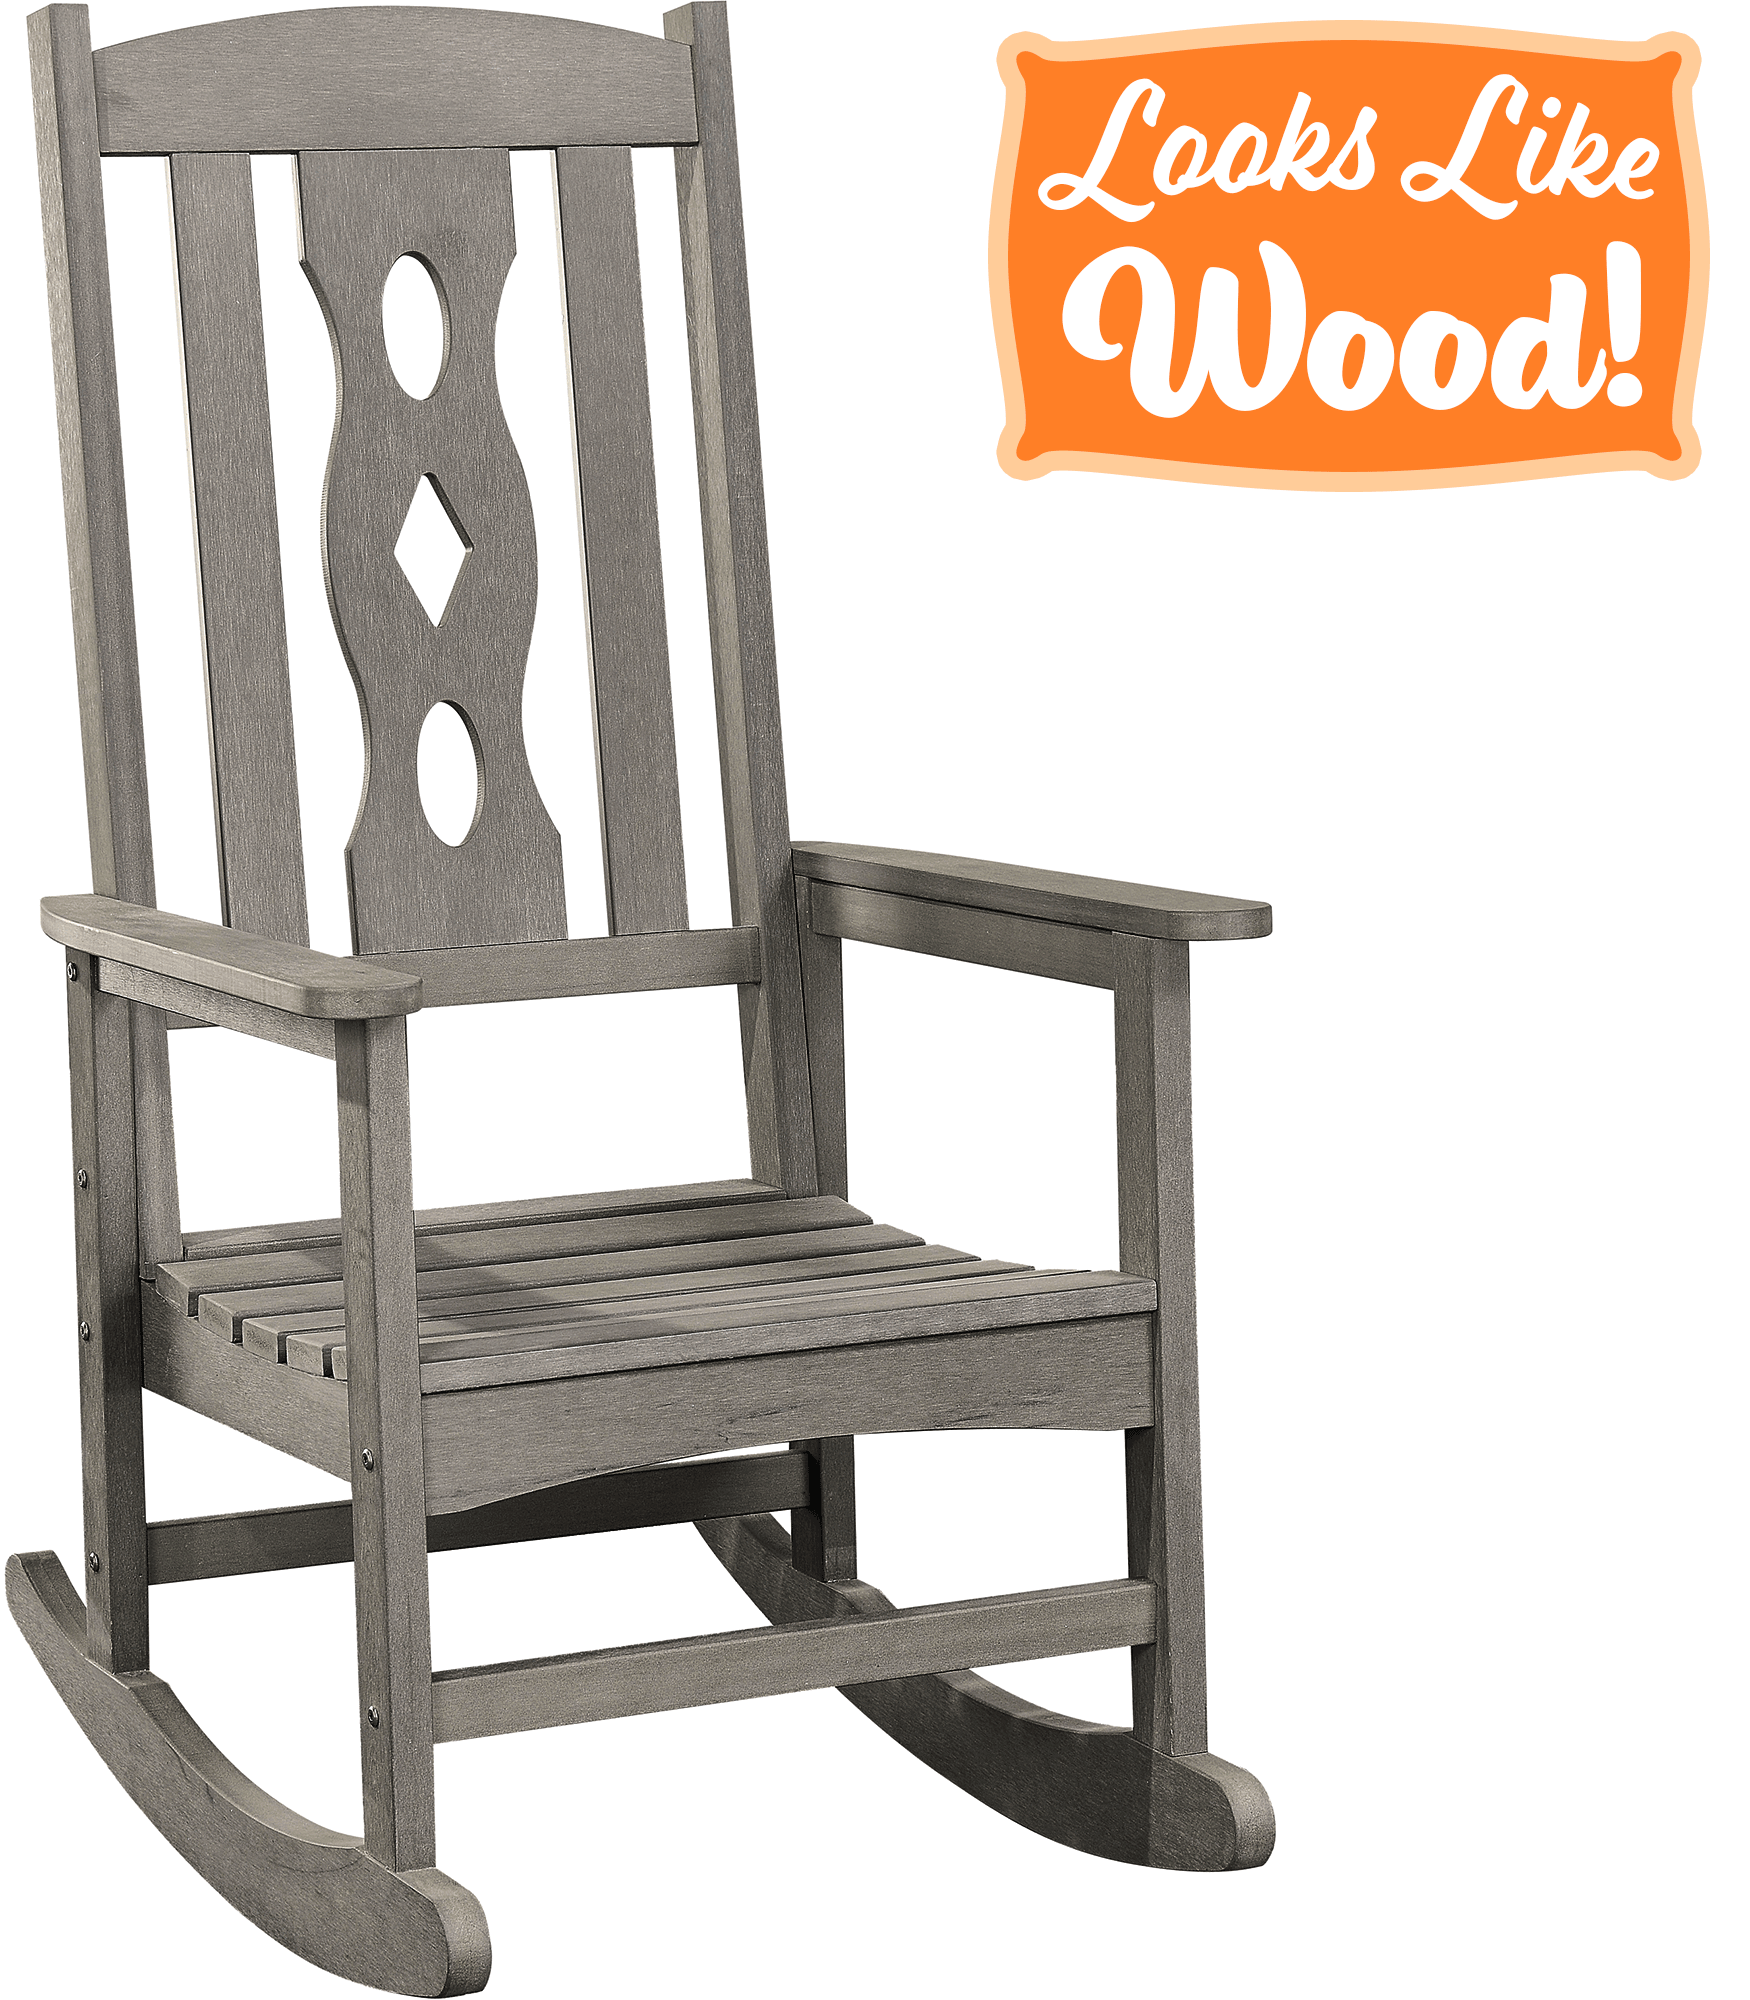 PolyTEAK Plastic Polylumber New 2021 All Weather Porch and Patio Created and Designed in California Matte Black PolyTEAK Modern Rocking Chair